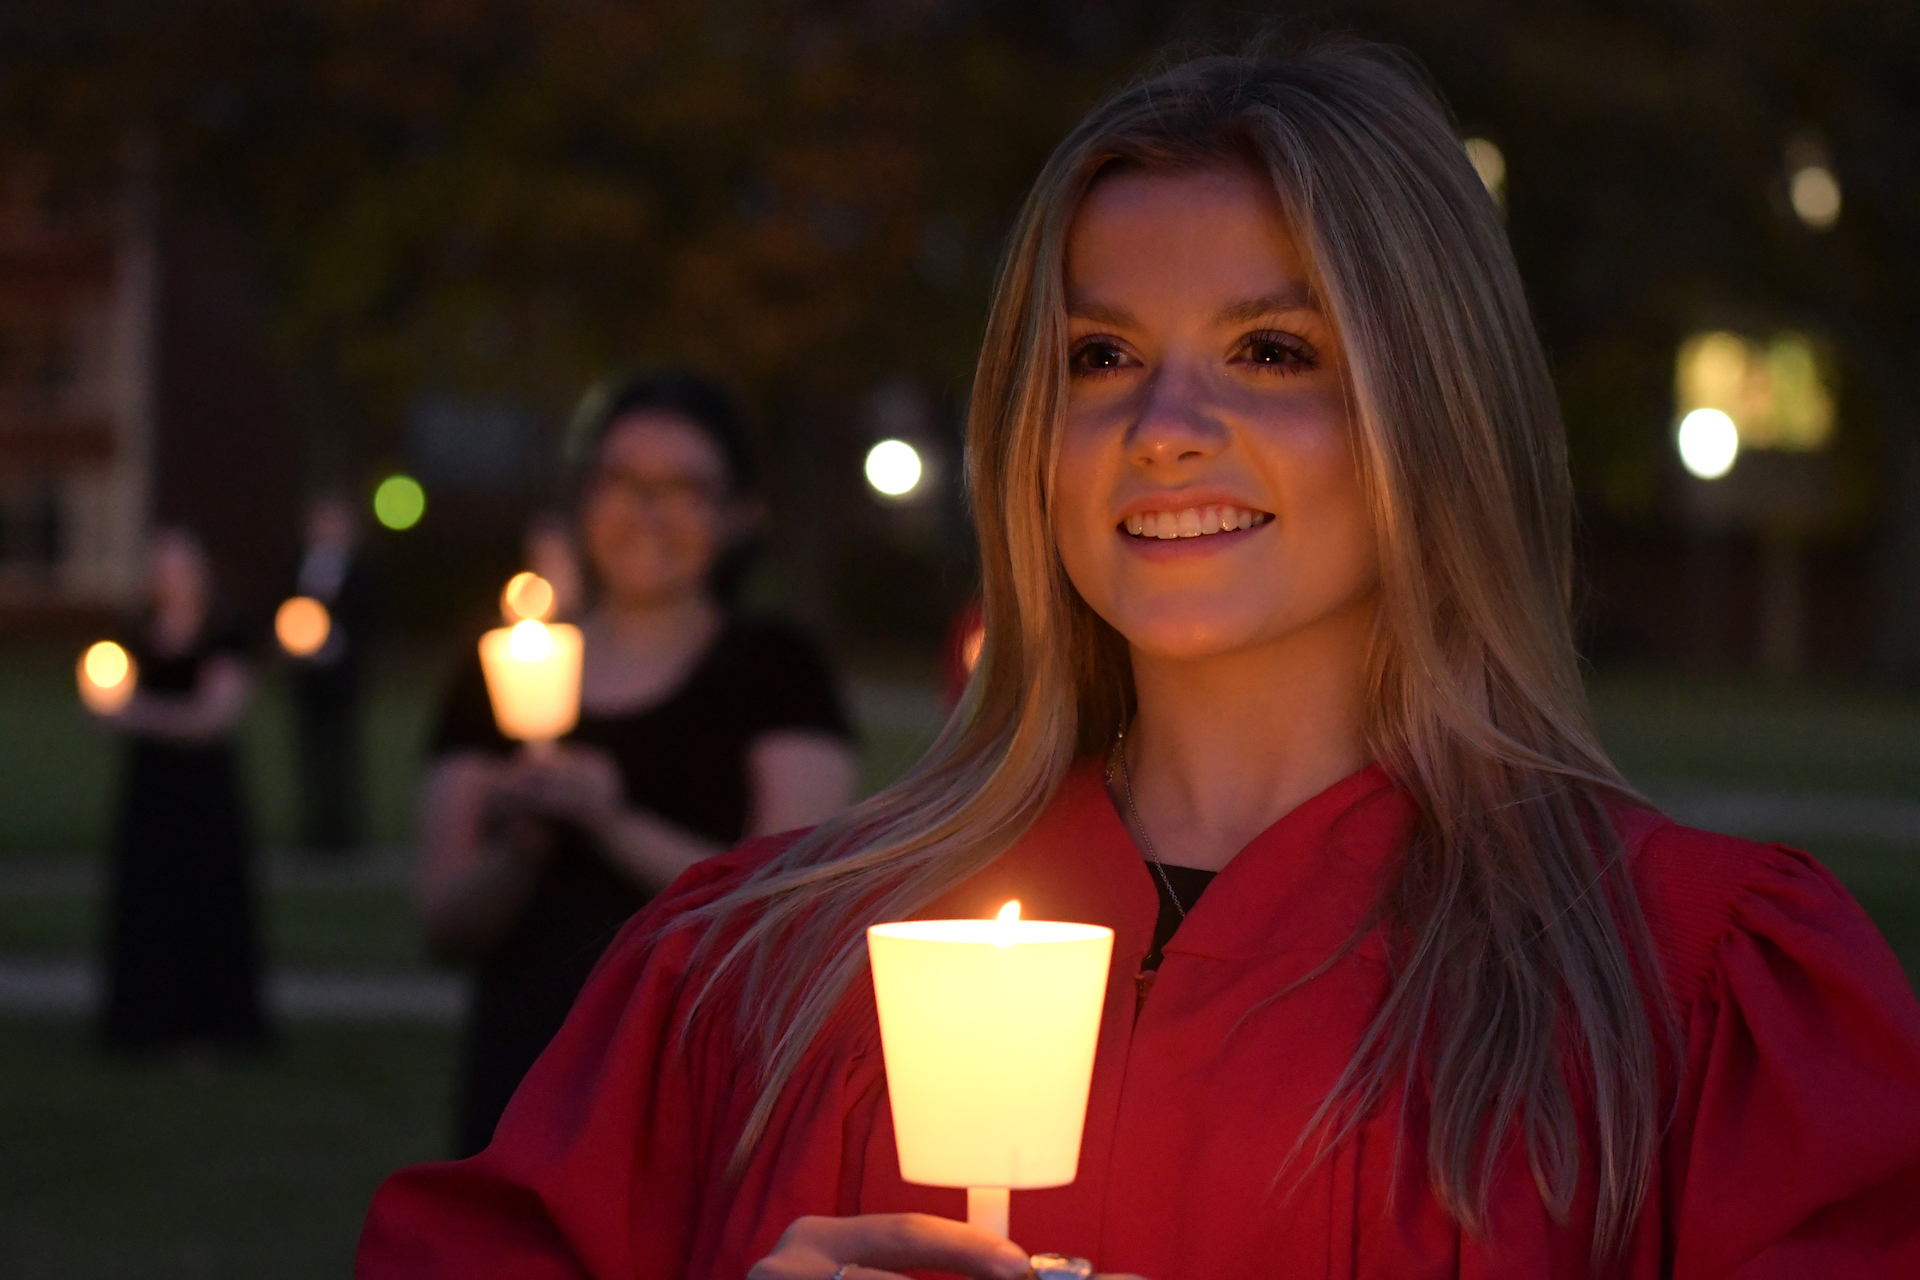 Female student holding candle